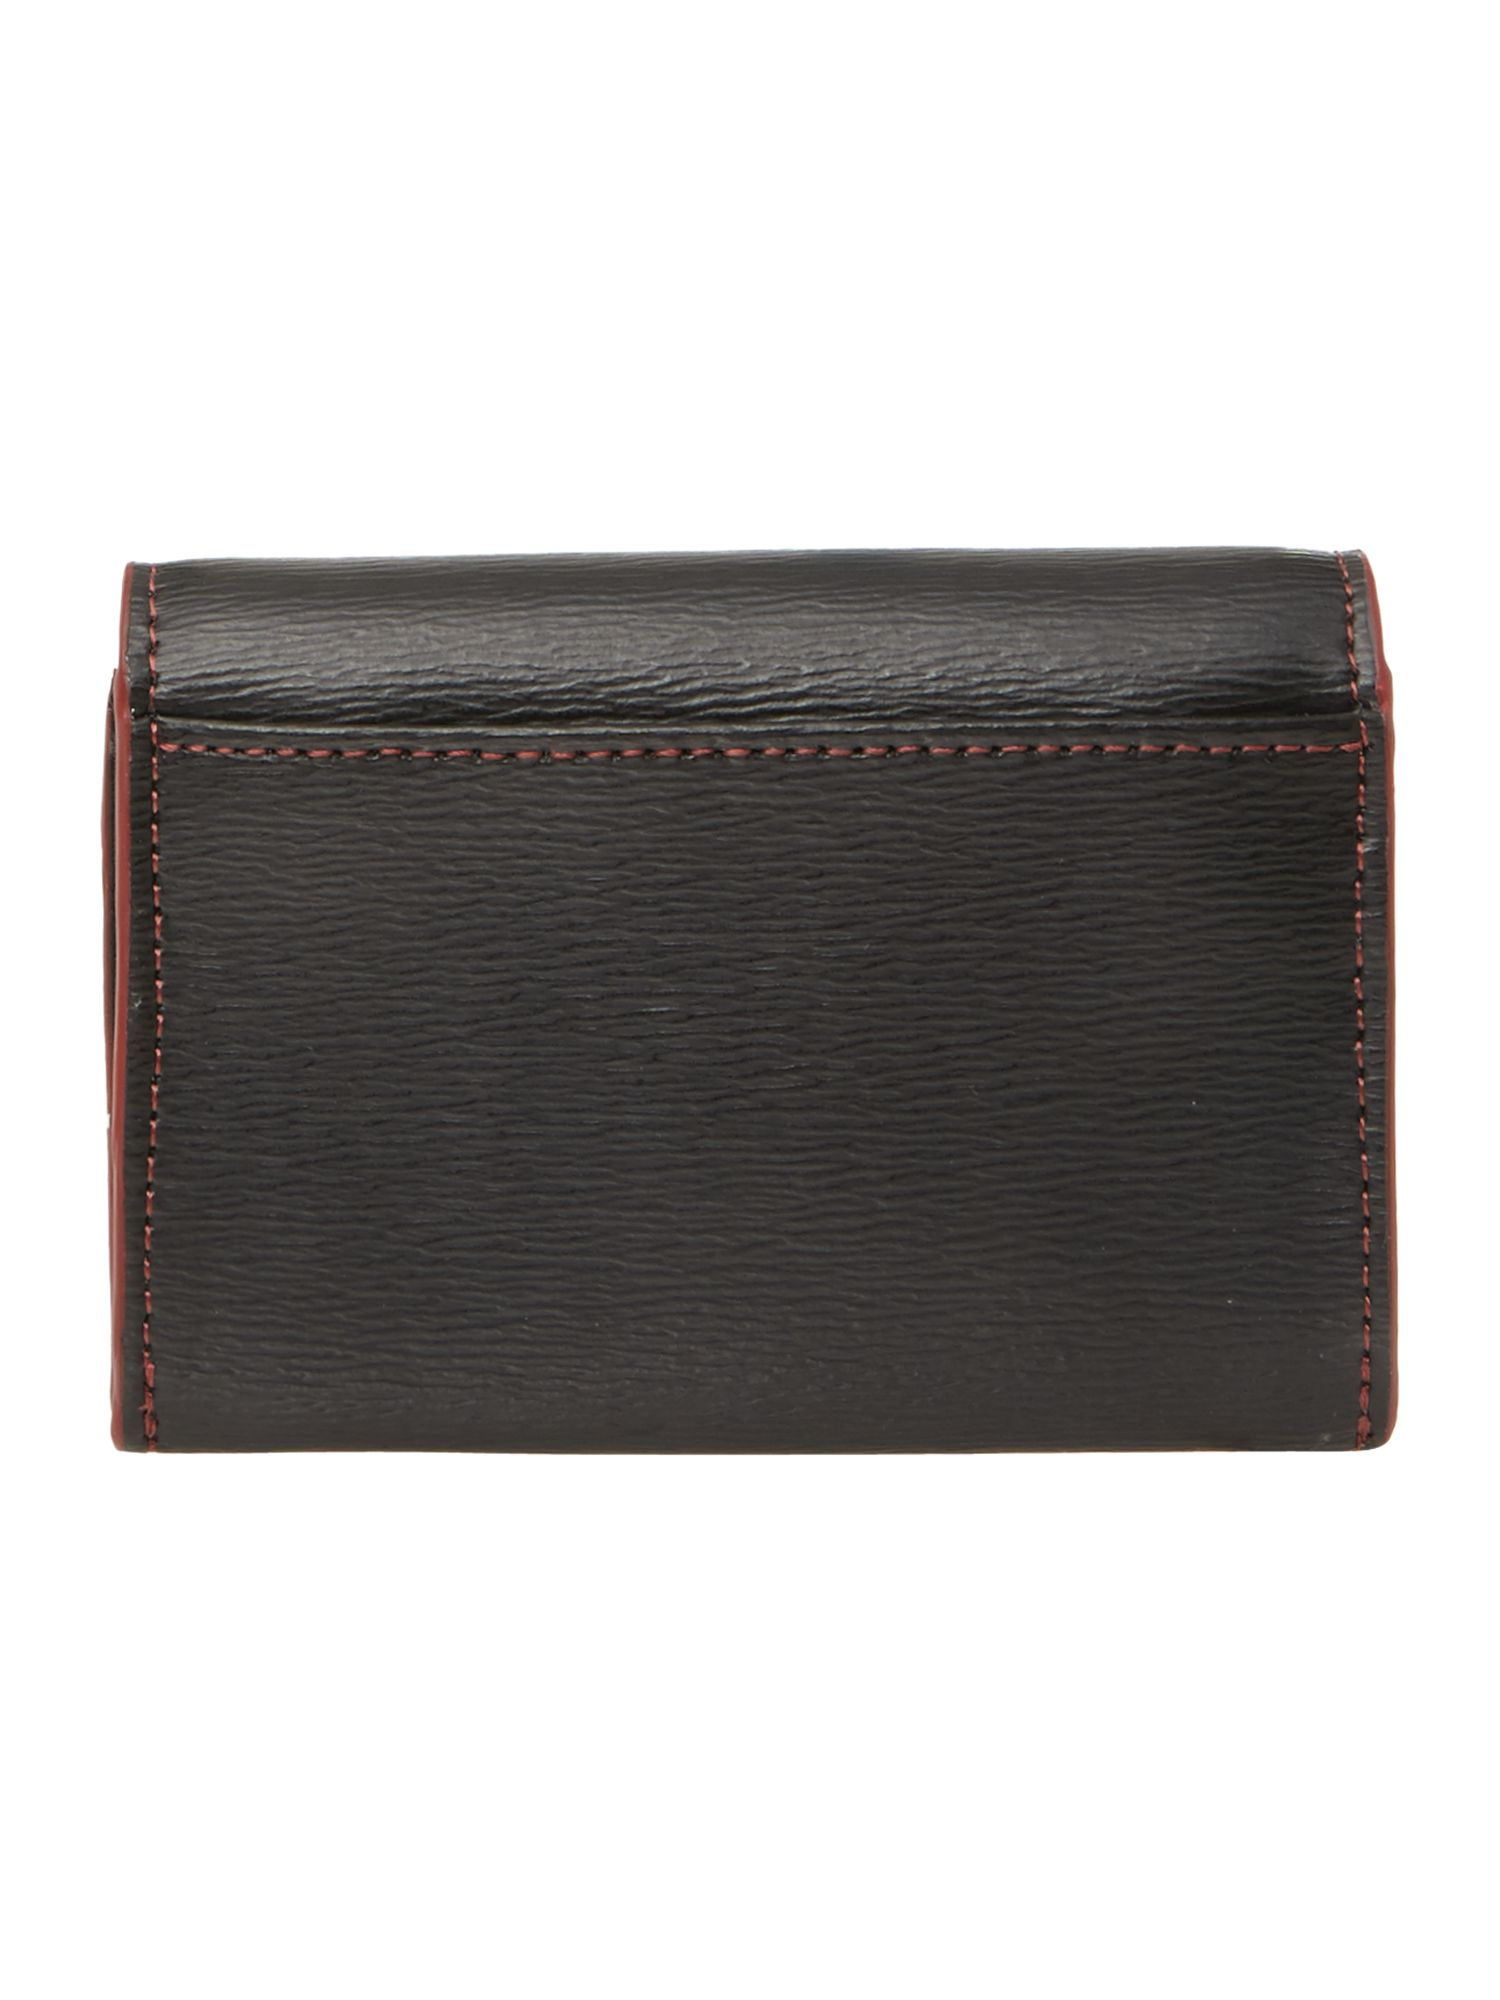 Black zip coin purse